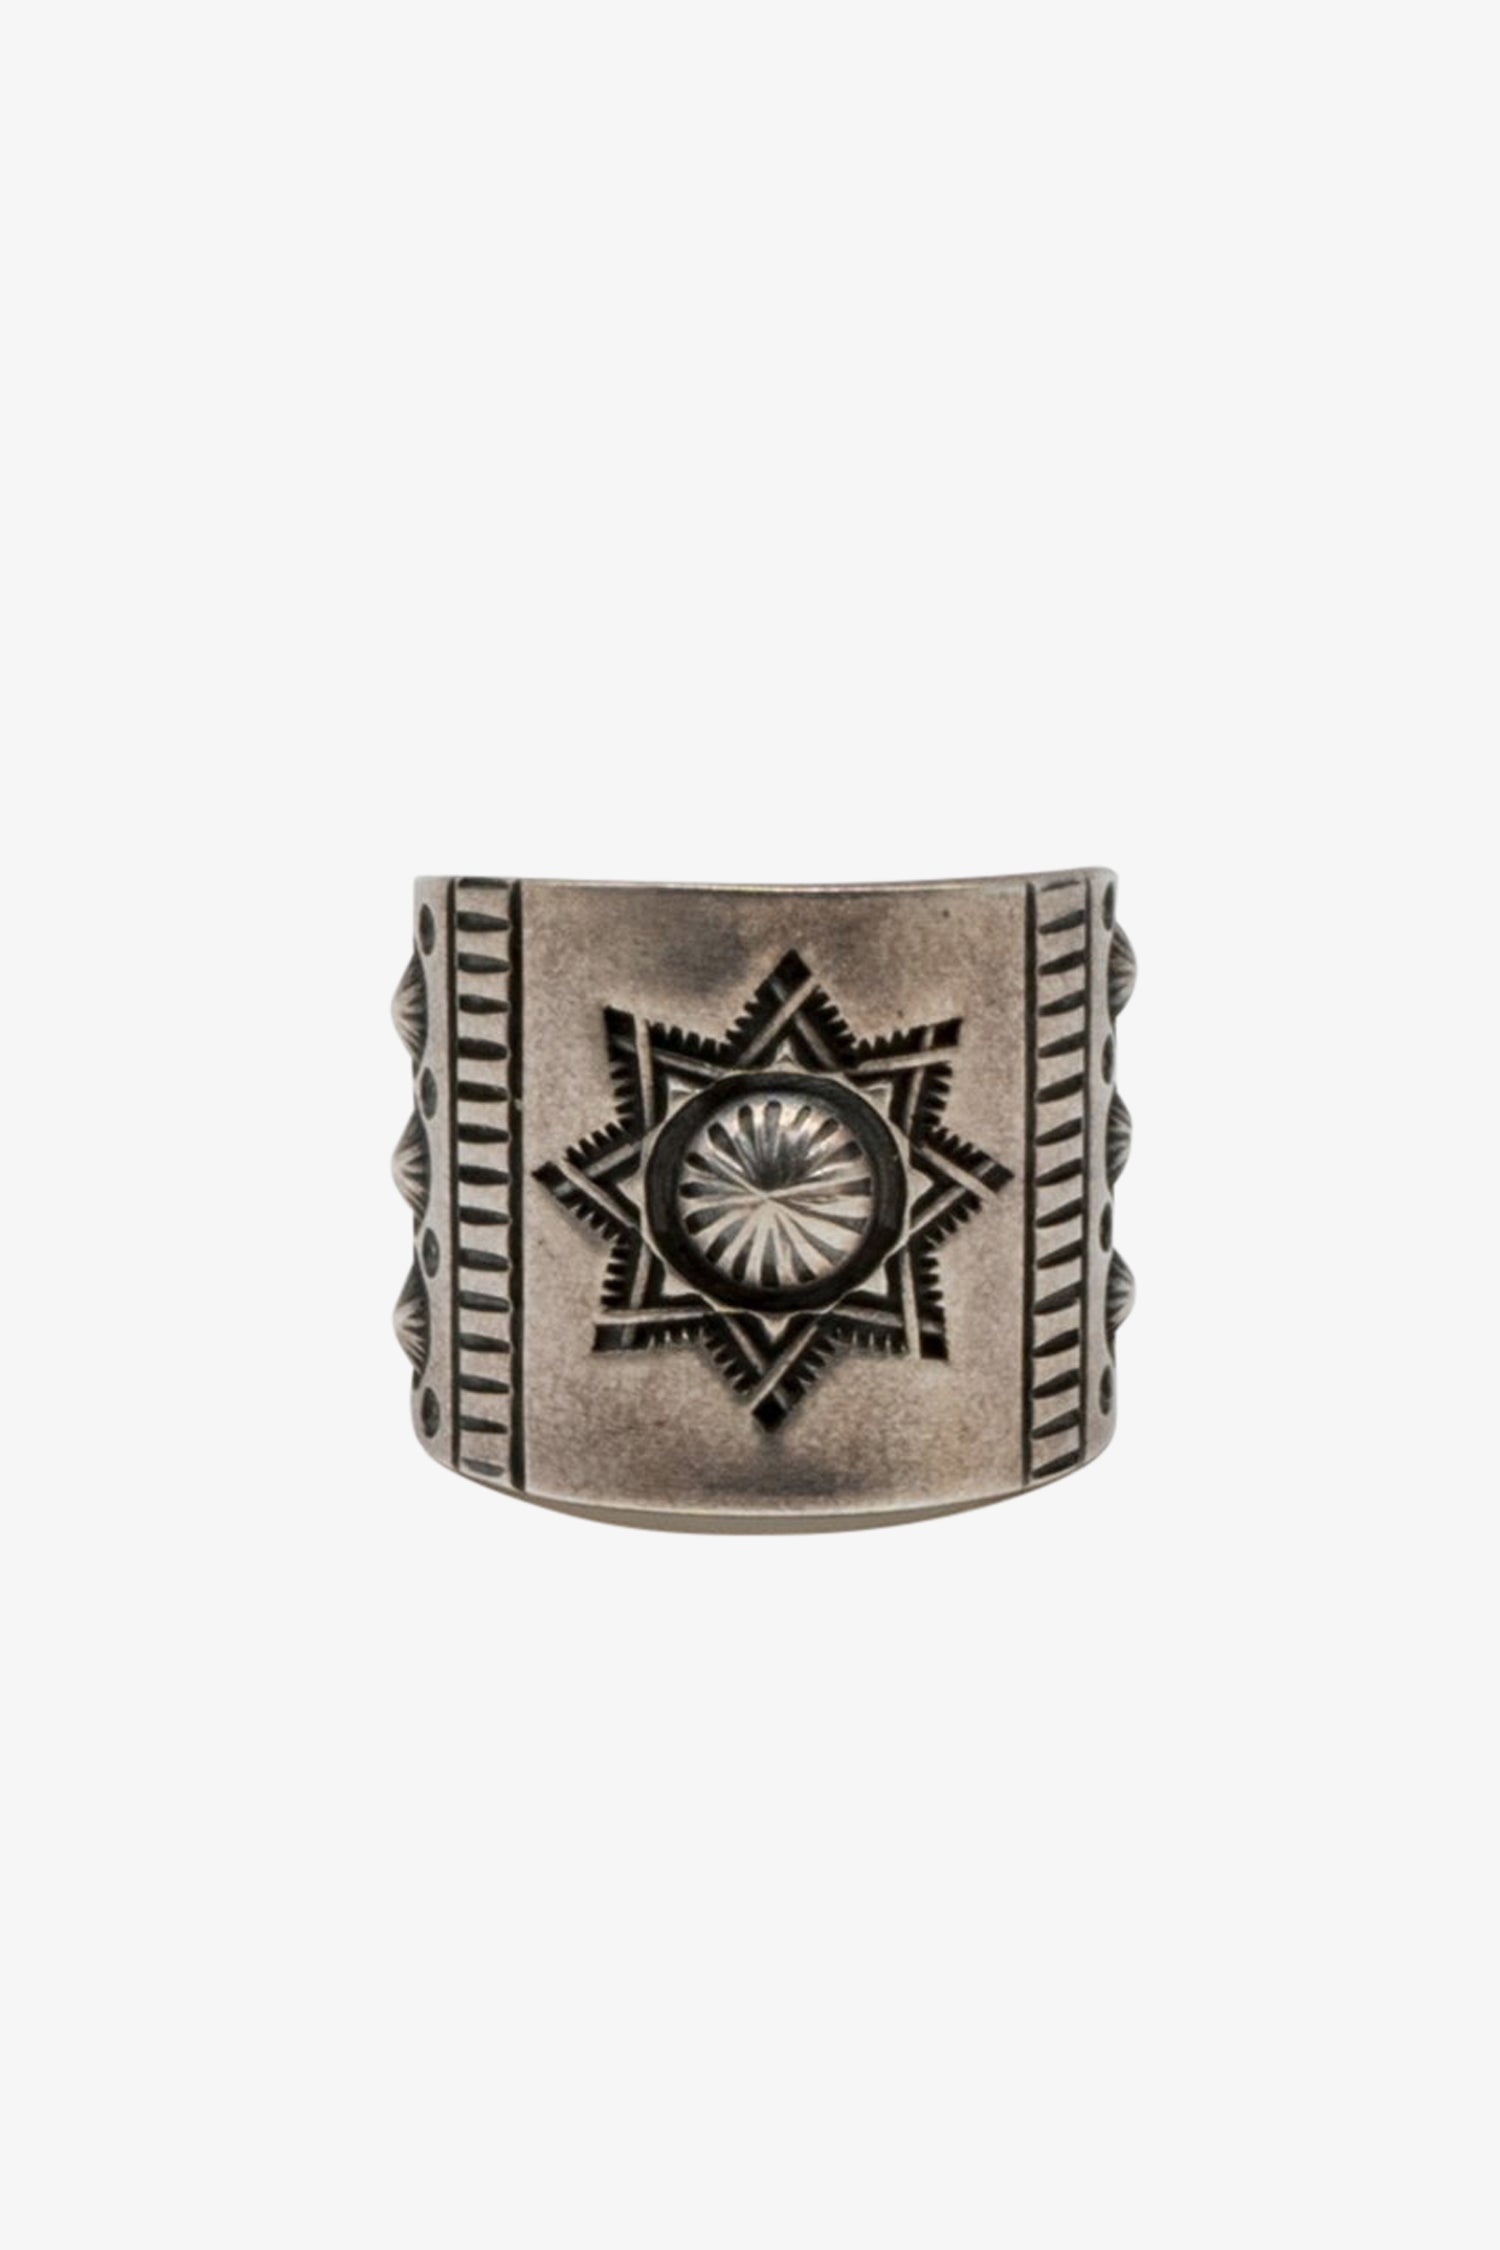 Selectshop FRAME - HOBO Hogan Silver Ring Wide by Stanley Parker Jewelry Dubai